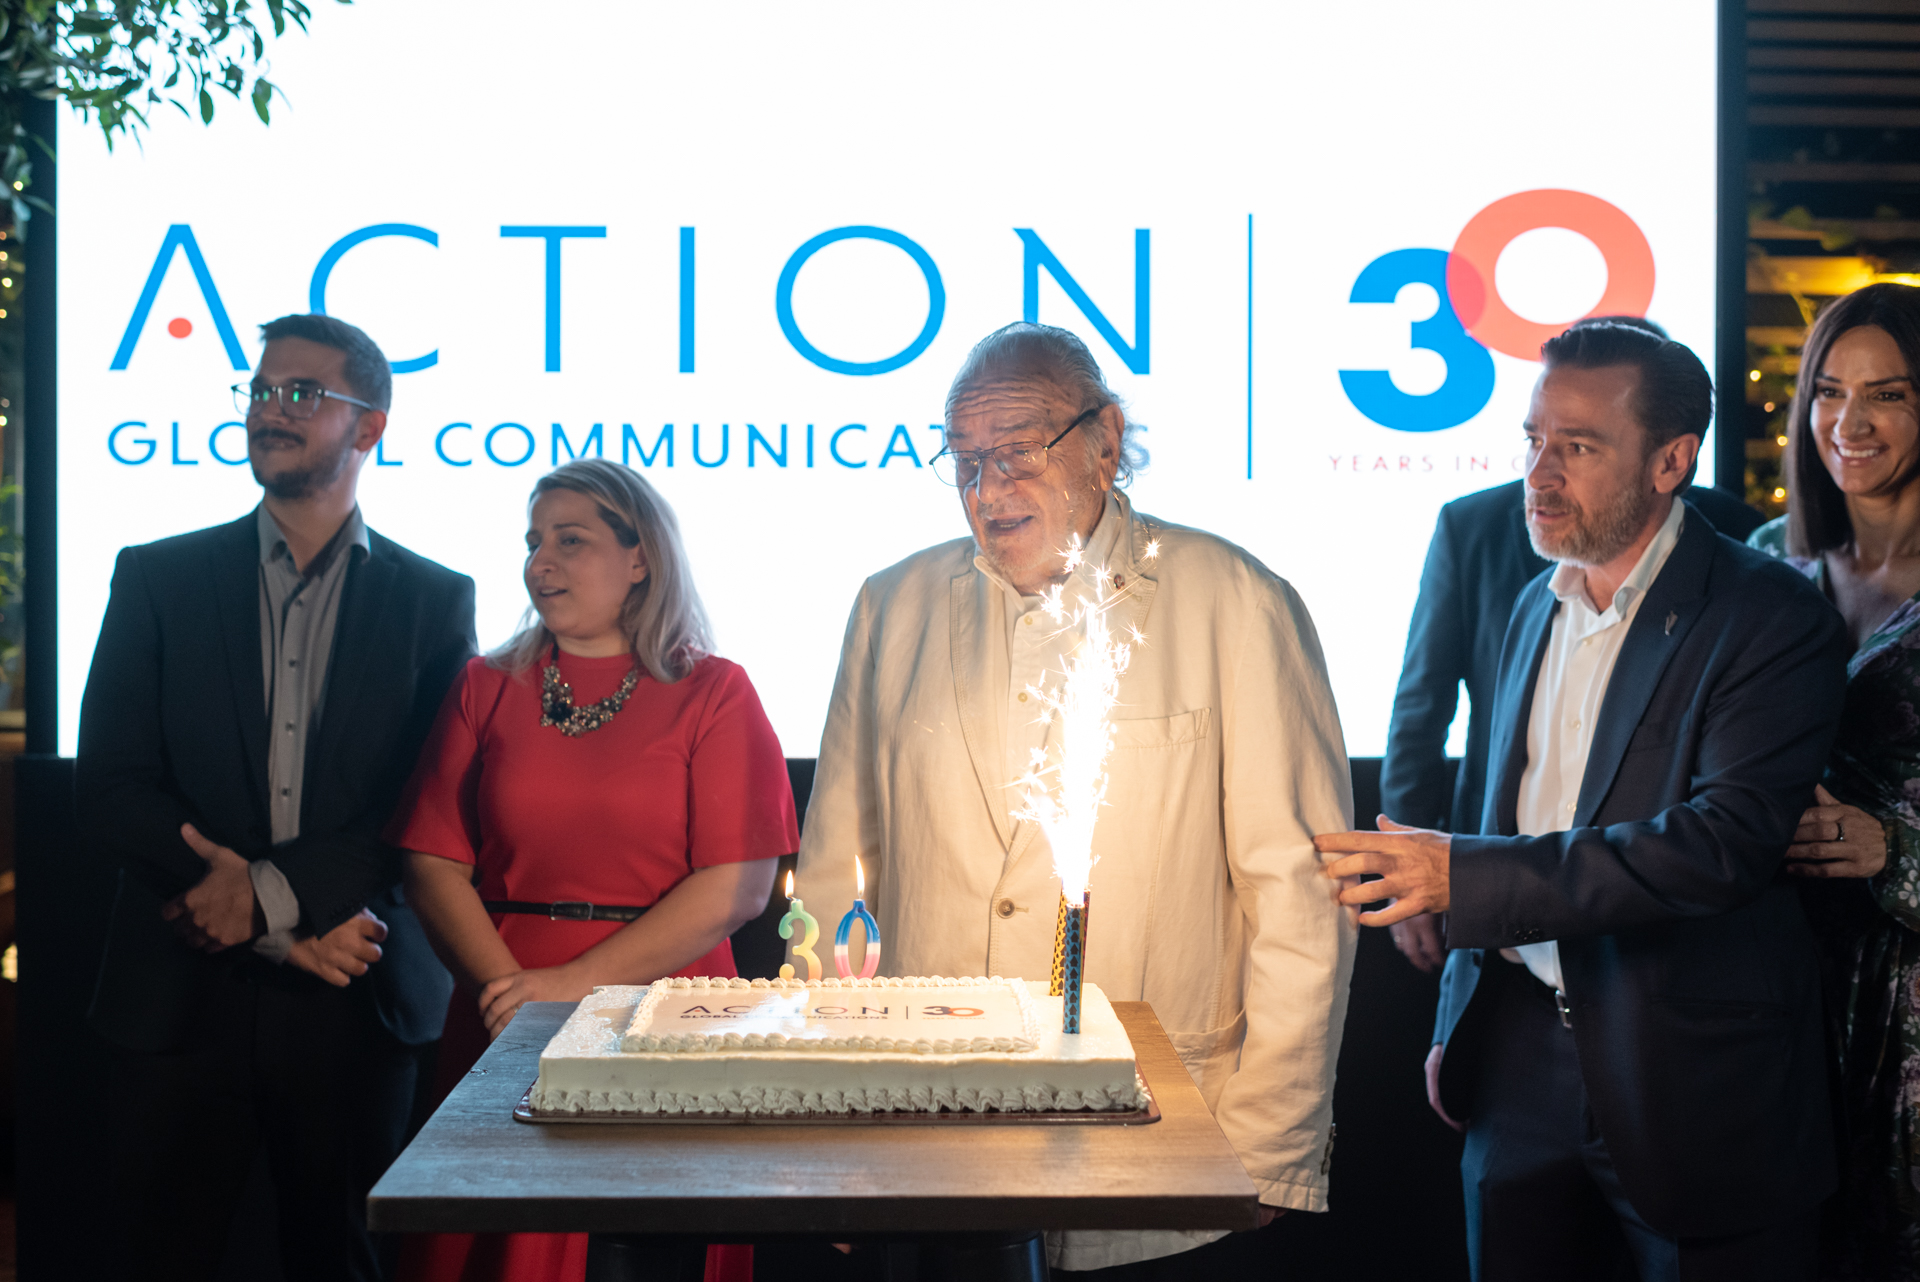 126-Action_Global_Communications_30y_in_Greece@Fouar.JPG